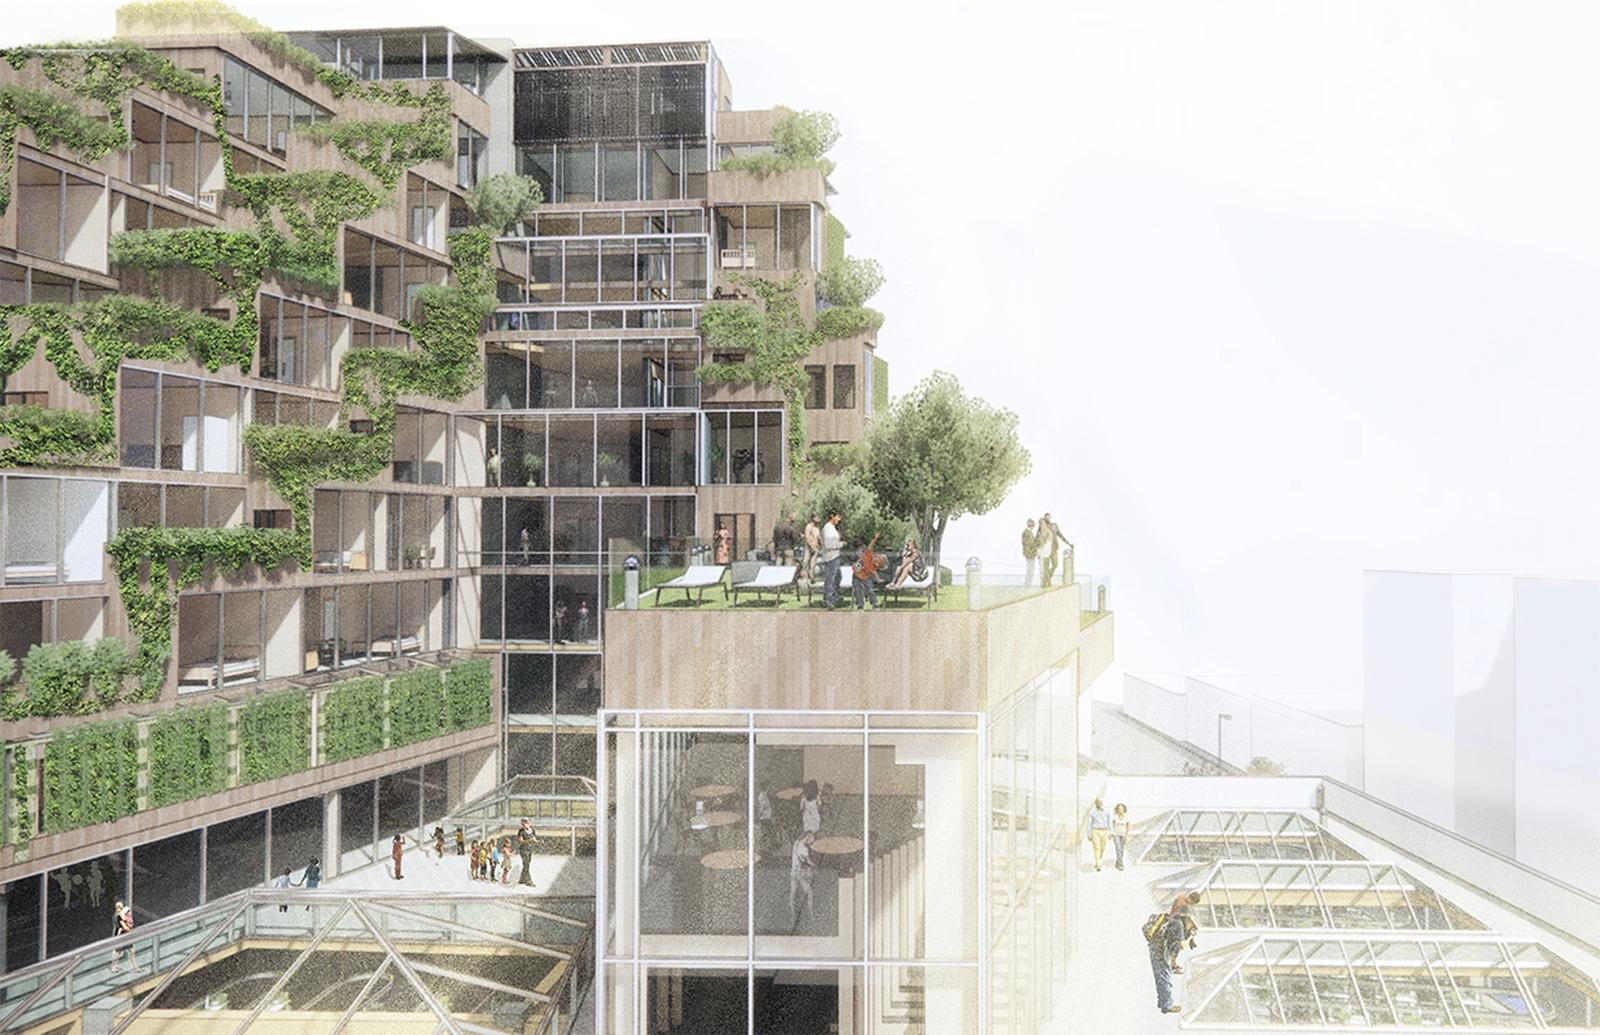 Residential units on upper levels have a view of the shared community spaces and recreation areas which strengthen the bond between residents and help foster trust in the community. The vegetation compensates for the hardness of downtown Los Angeles.